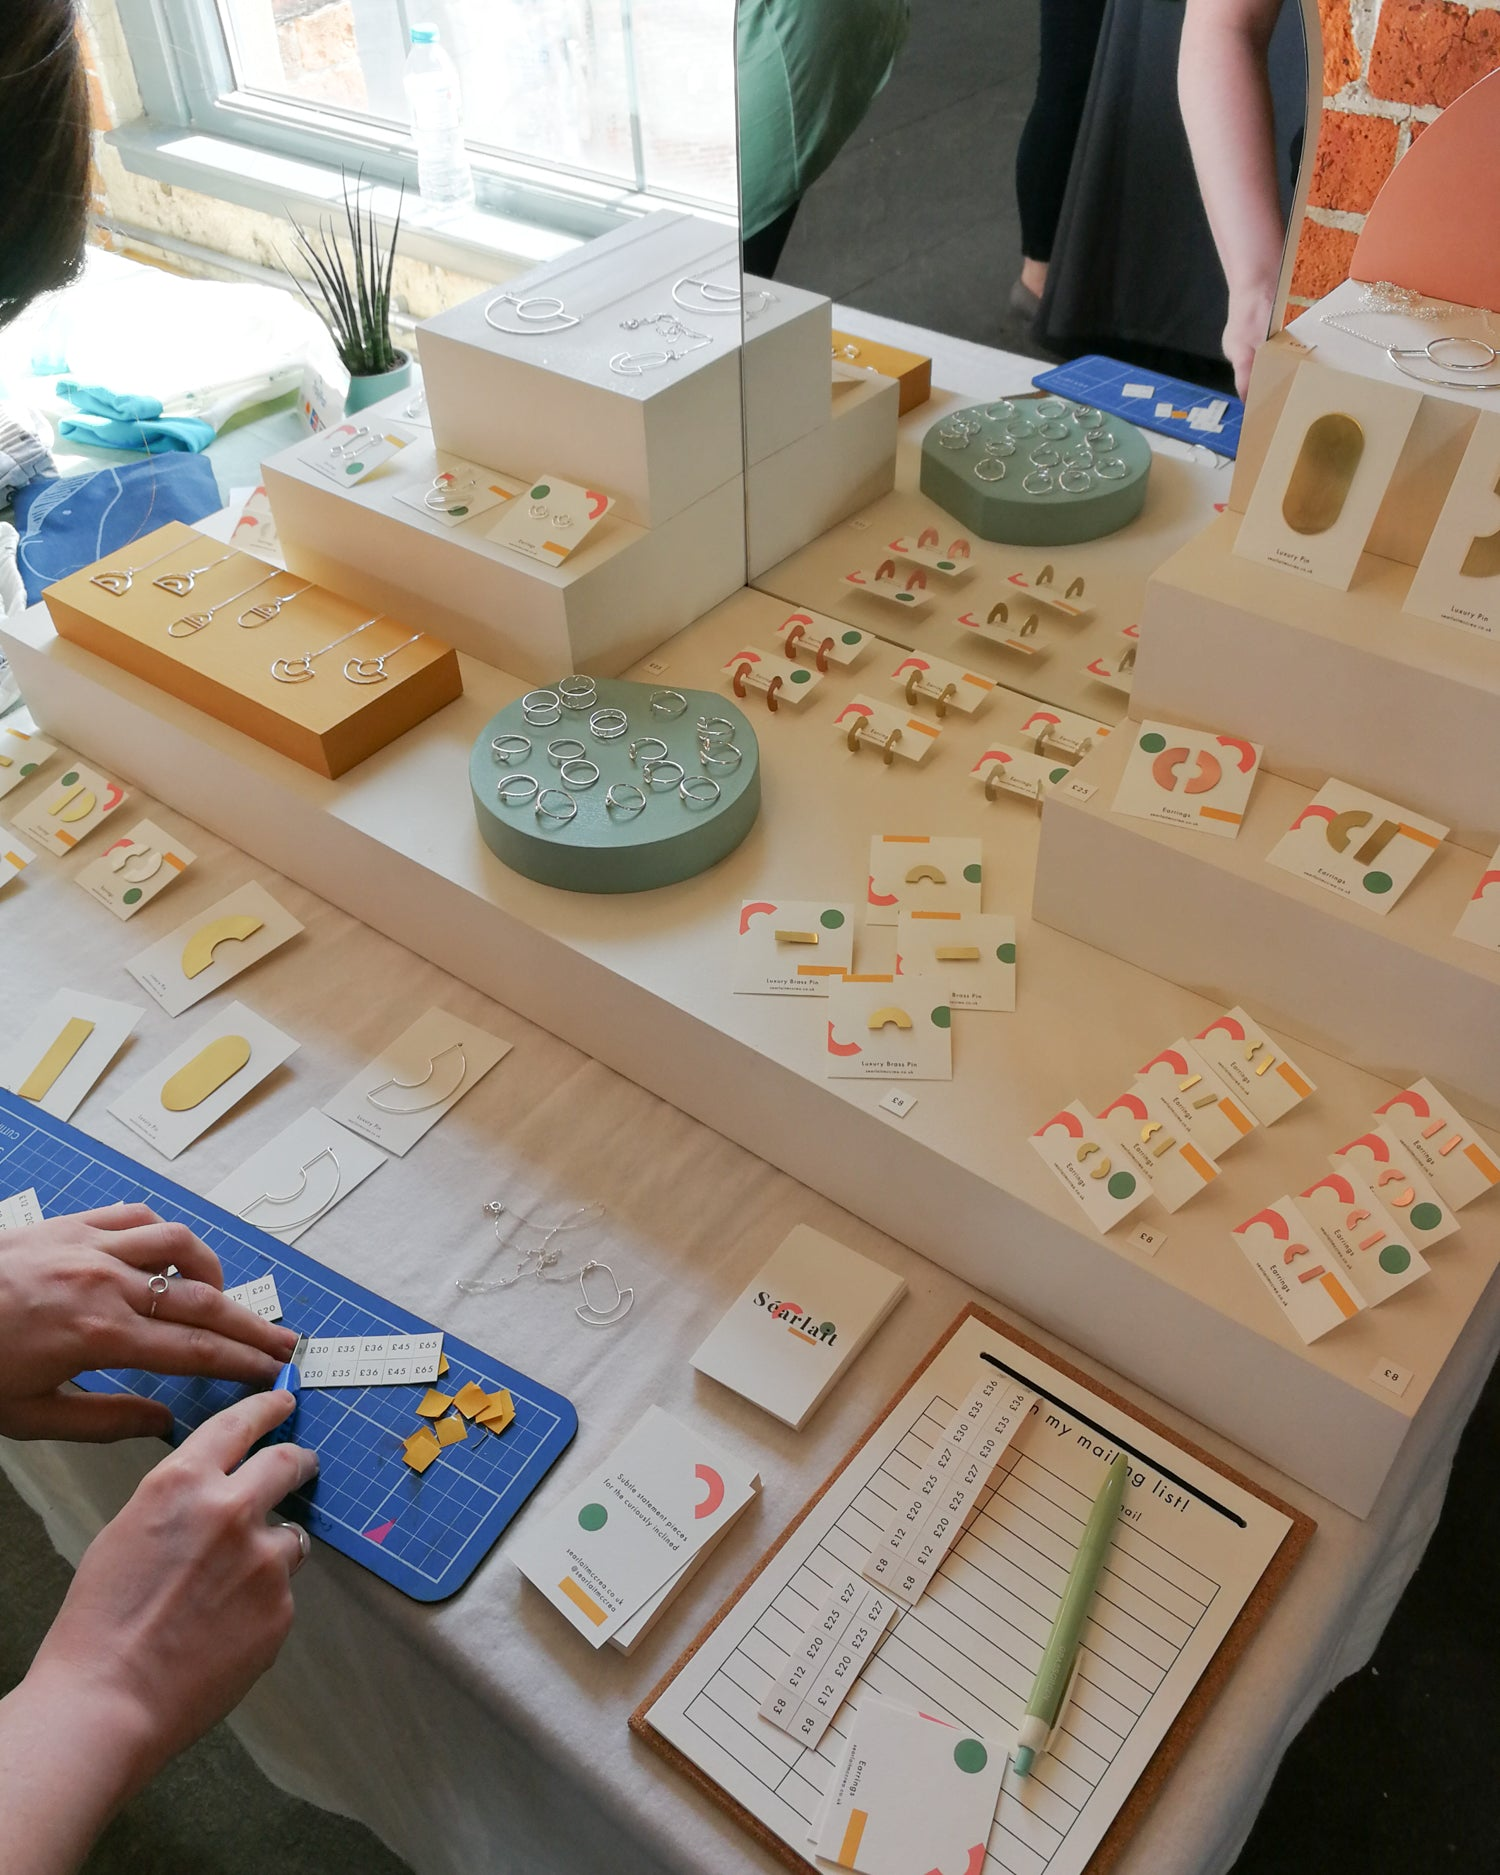 Today jewellery craft fair display set-up at Northern Craft